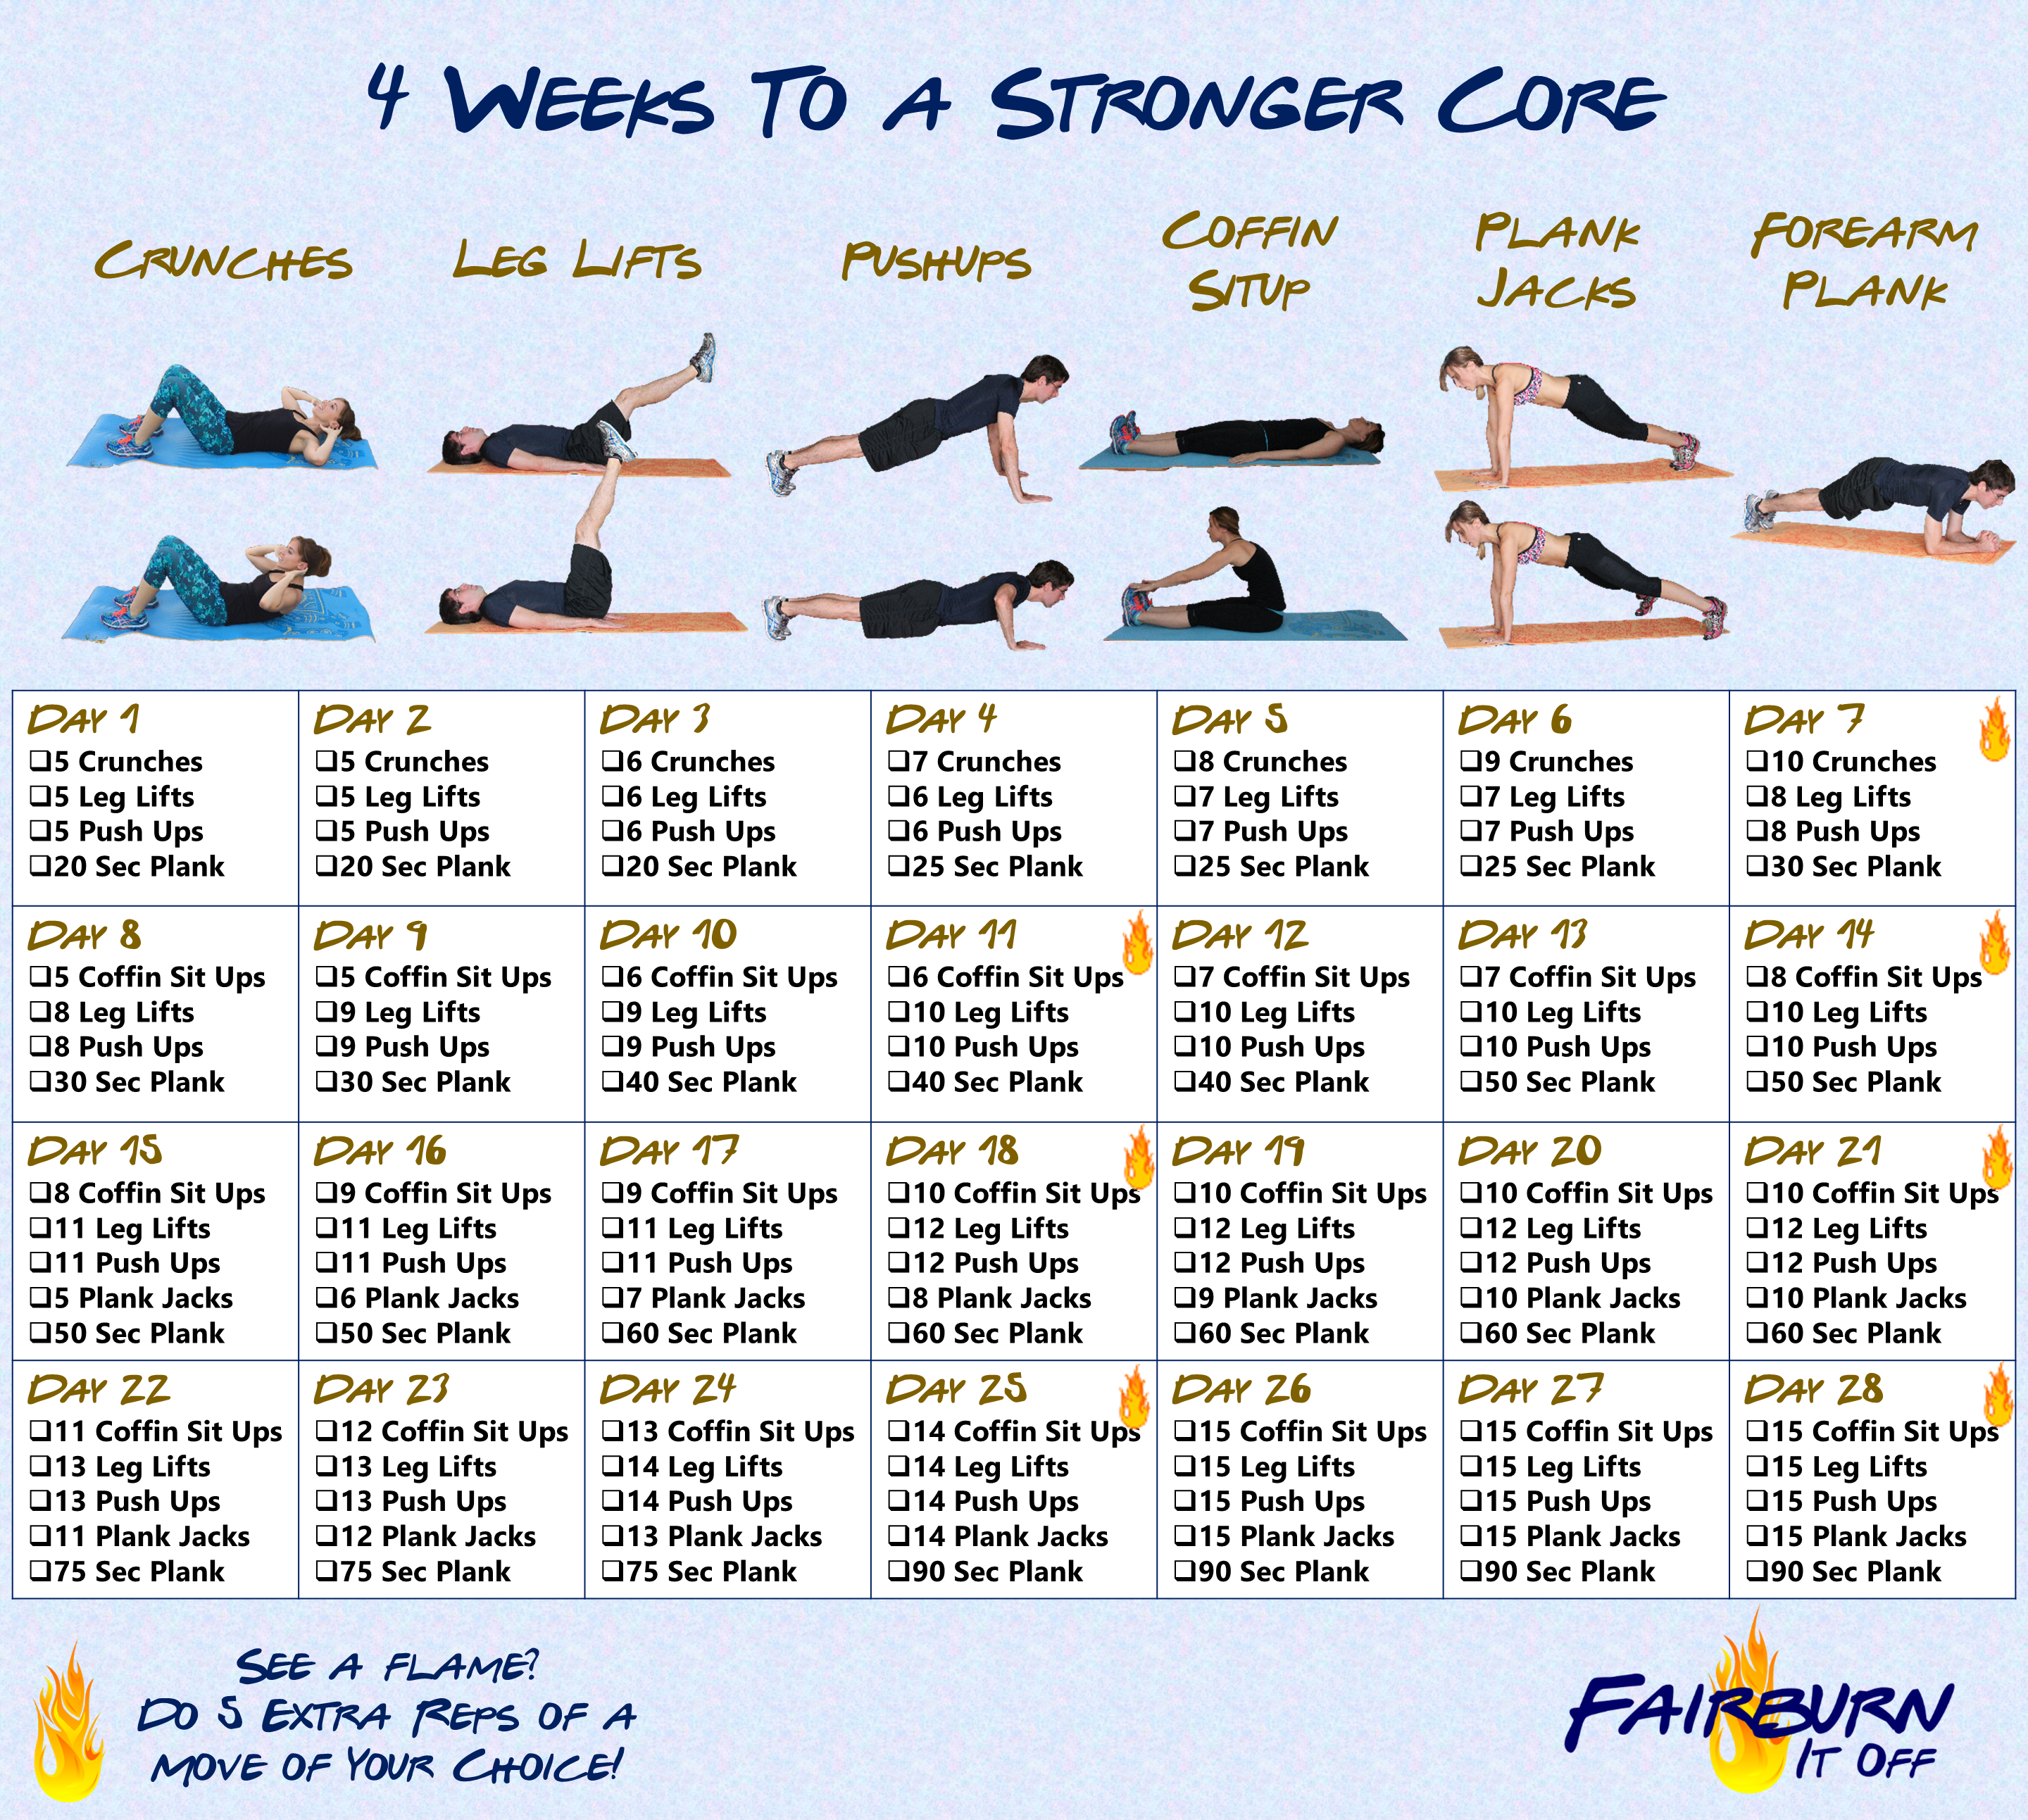 Lunchtime Workouts to Keep You Fit Lunchtime Workouts to Keep You Fit new picture